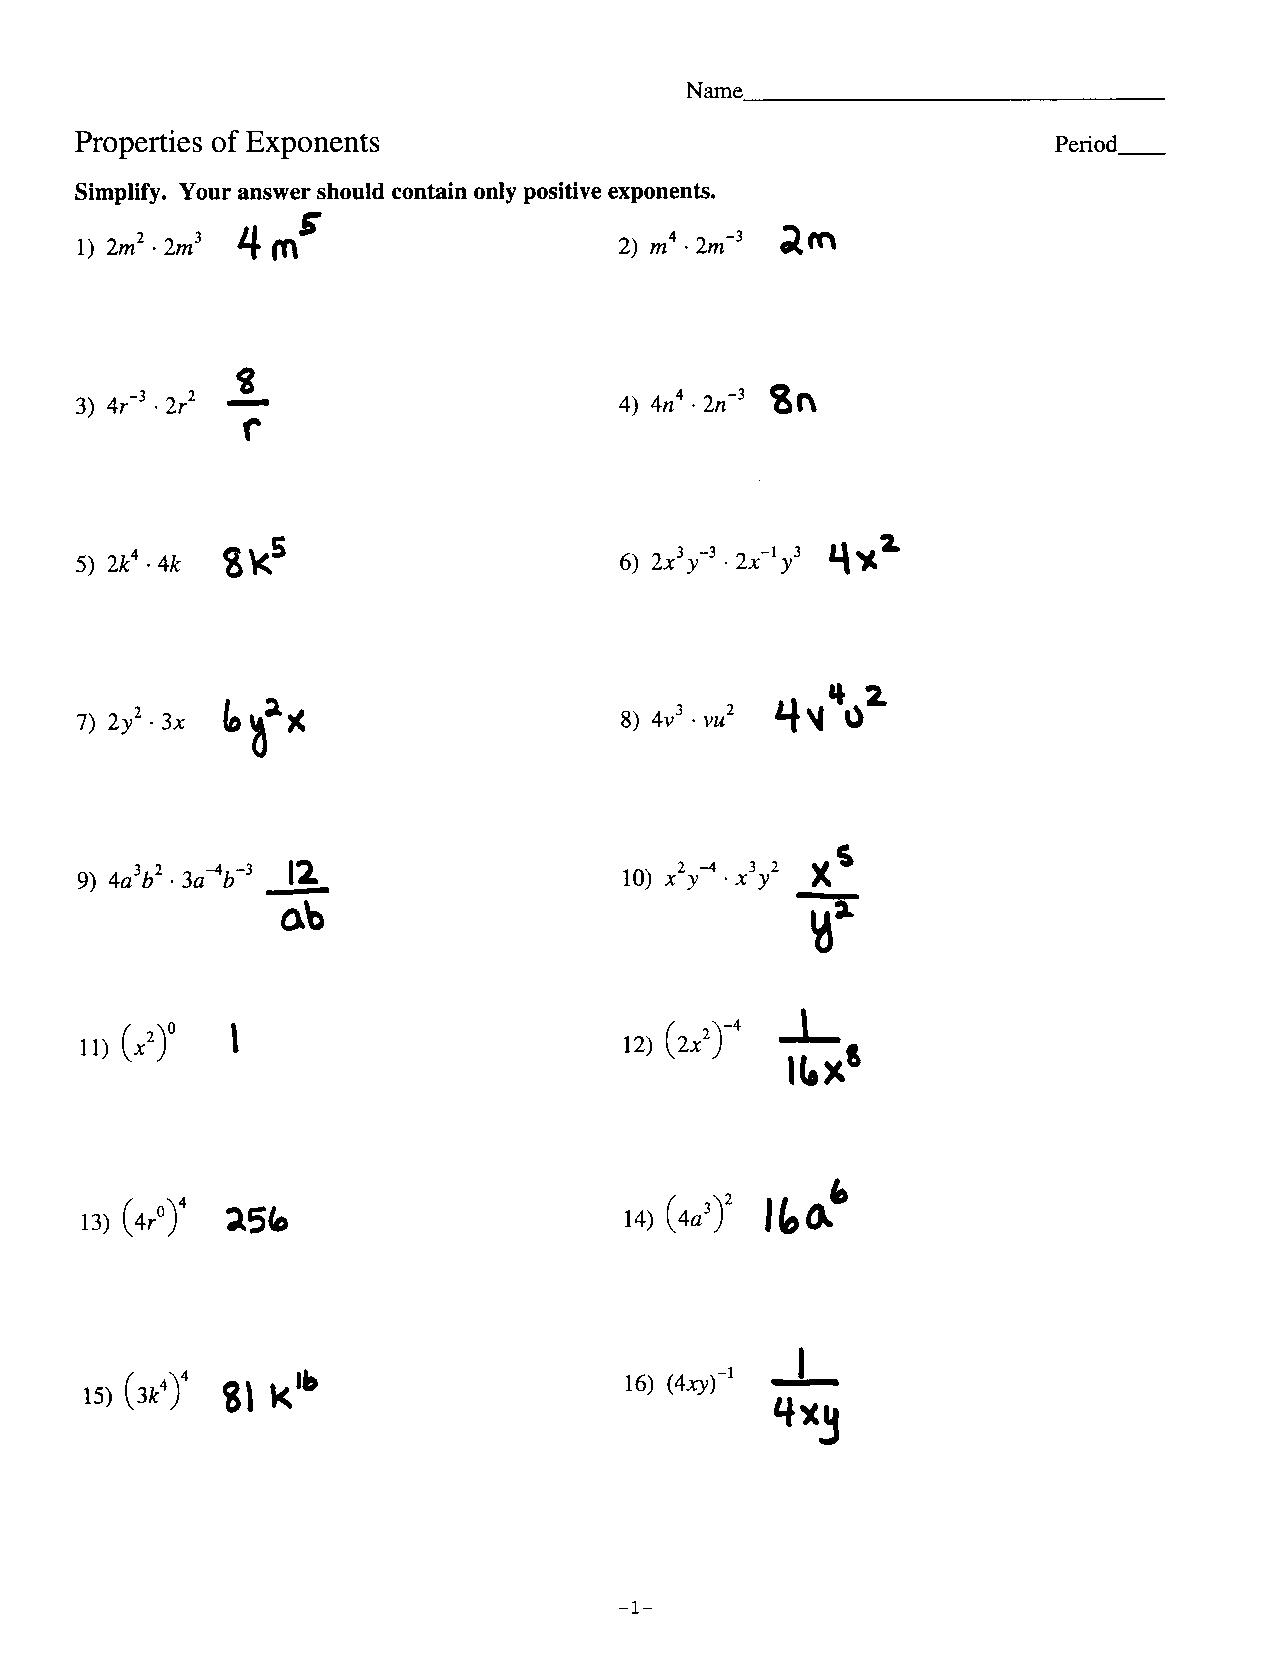 Evaluating Exponents Worksheet Answers